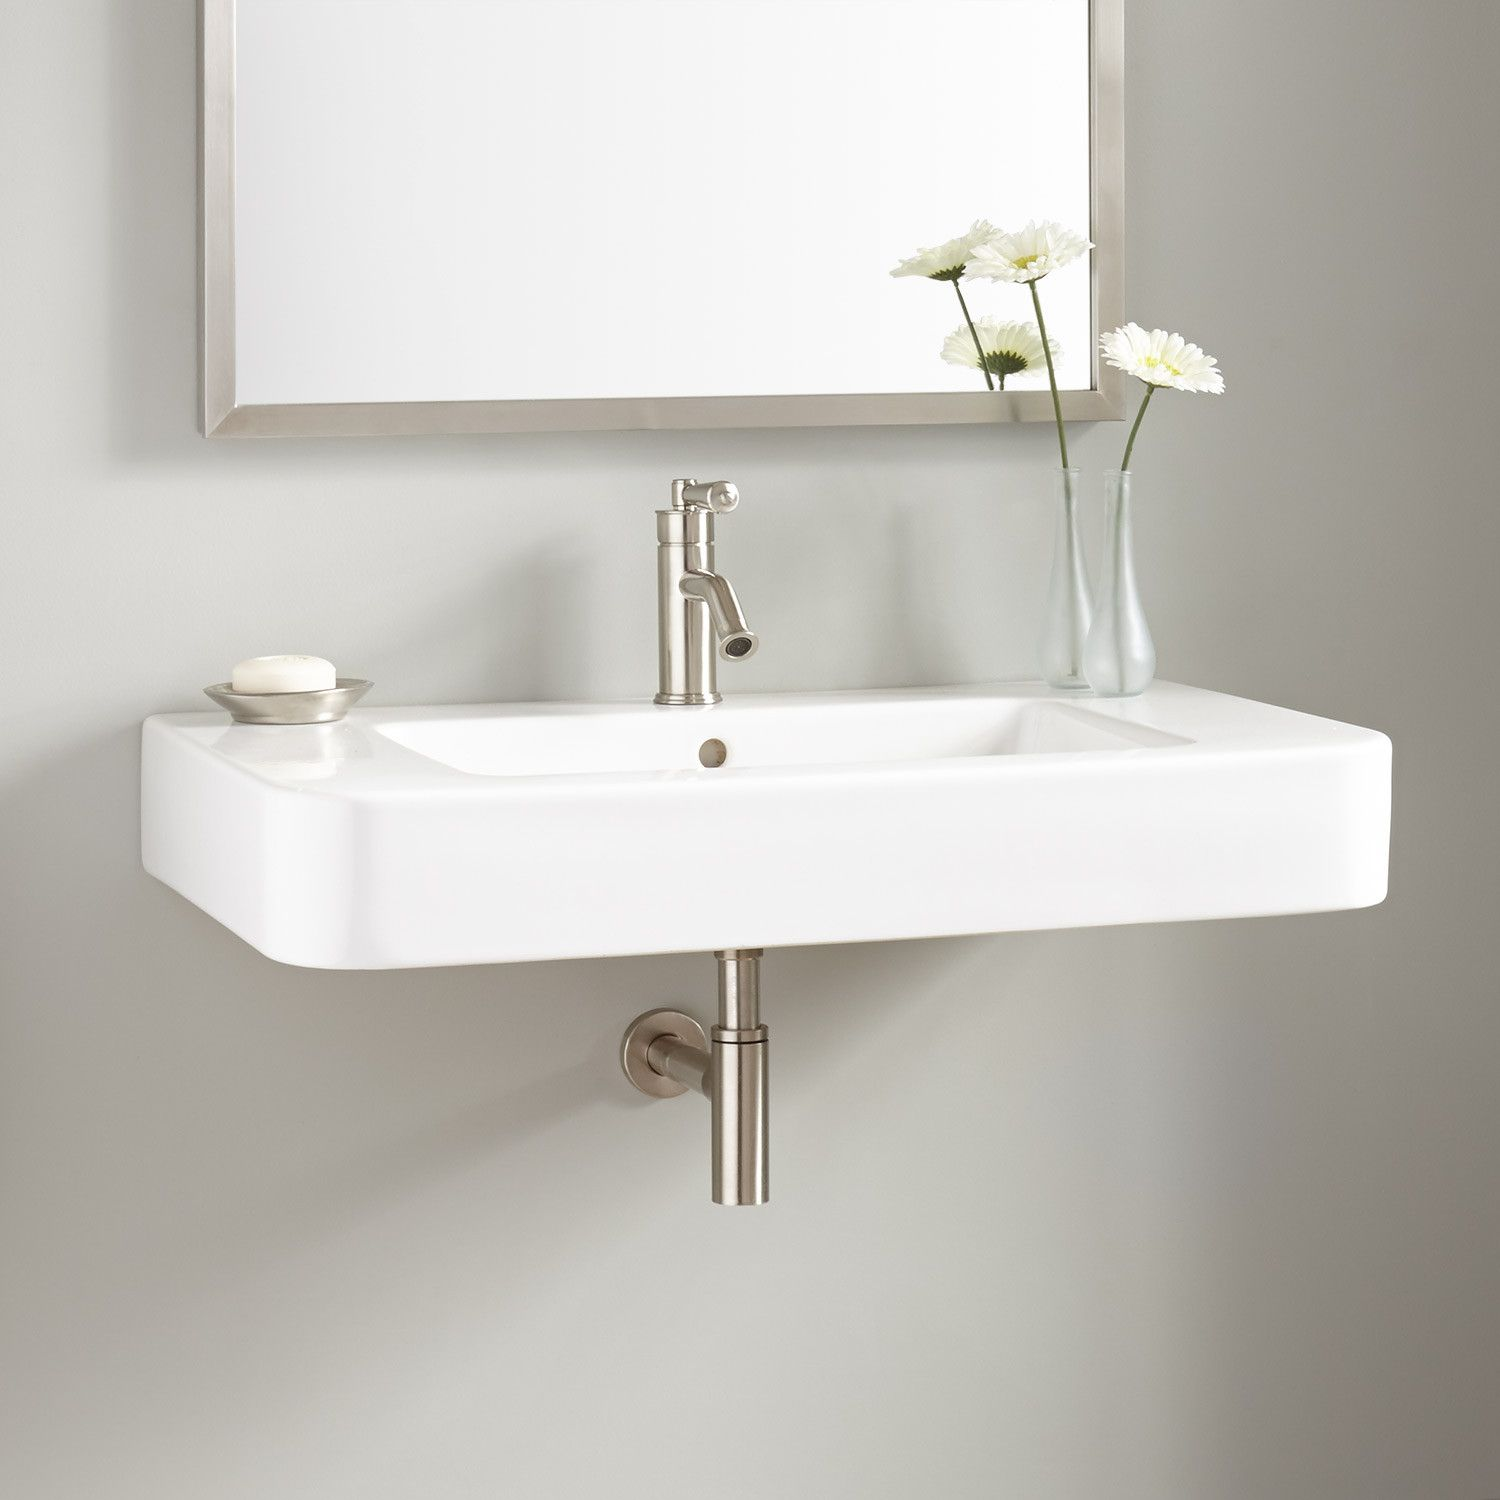 34 Burleson Porcelain WallMount Sink  Bathroom